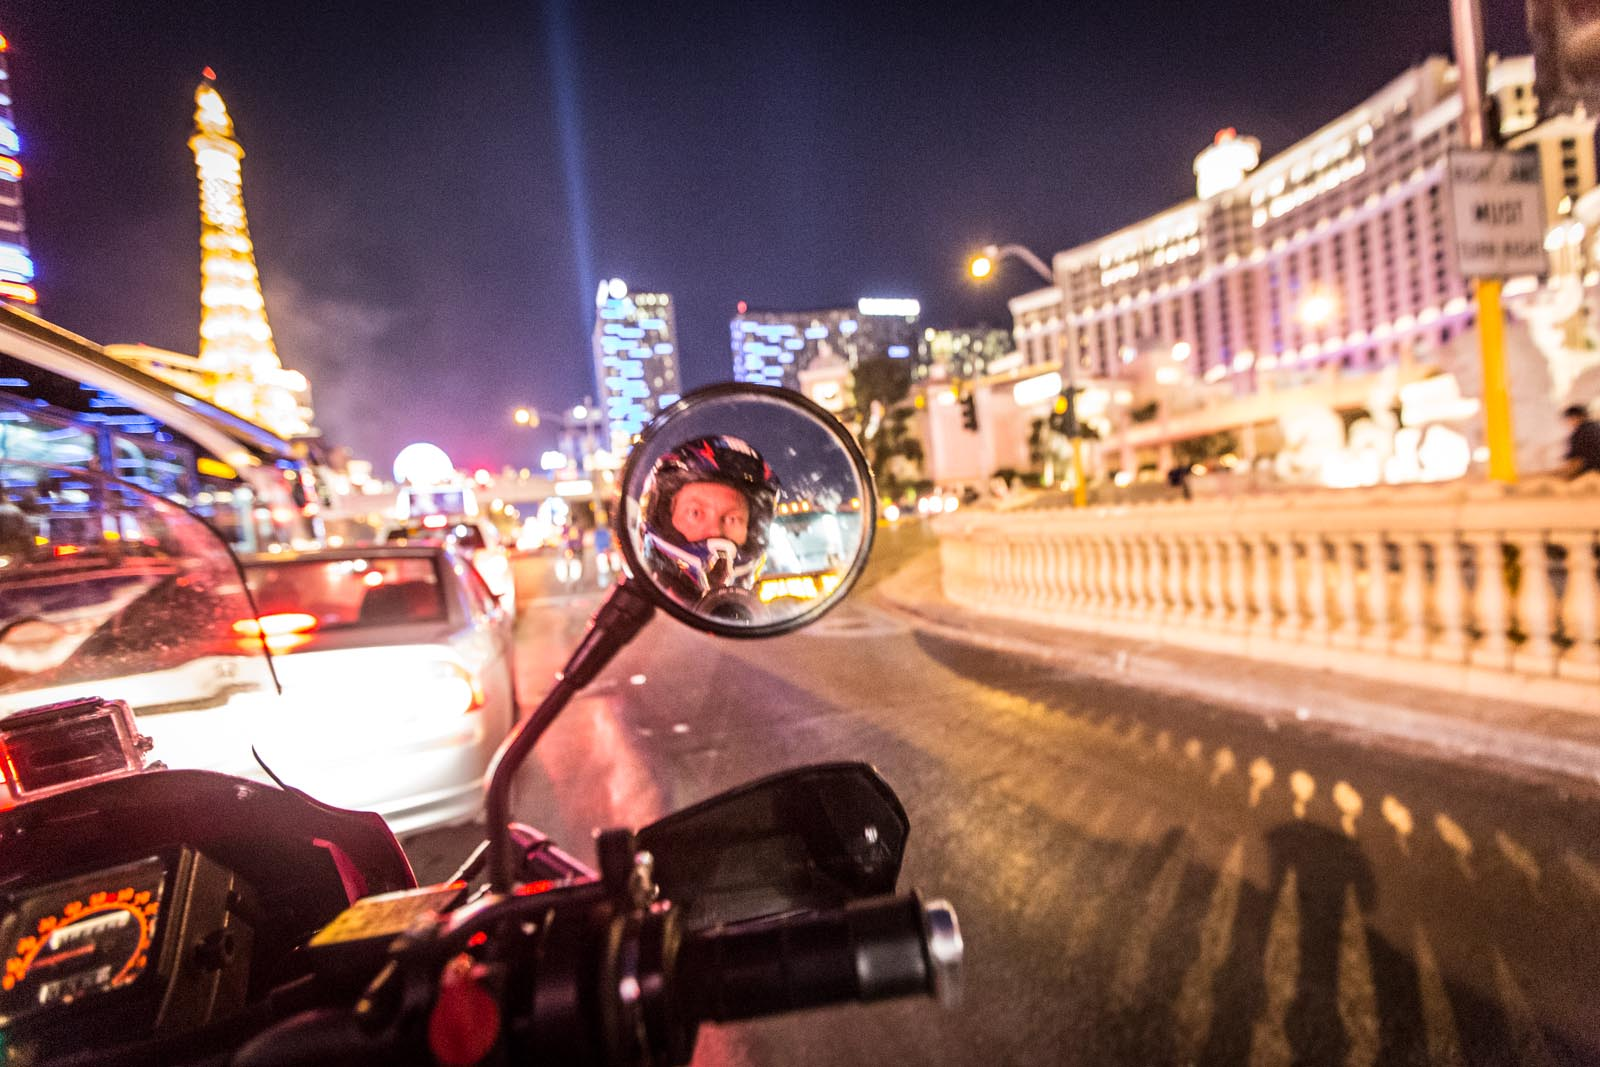 Being stuck in traffic is awesome if it's Vegas and you're on a KLR.